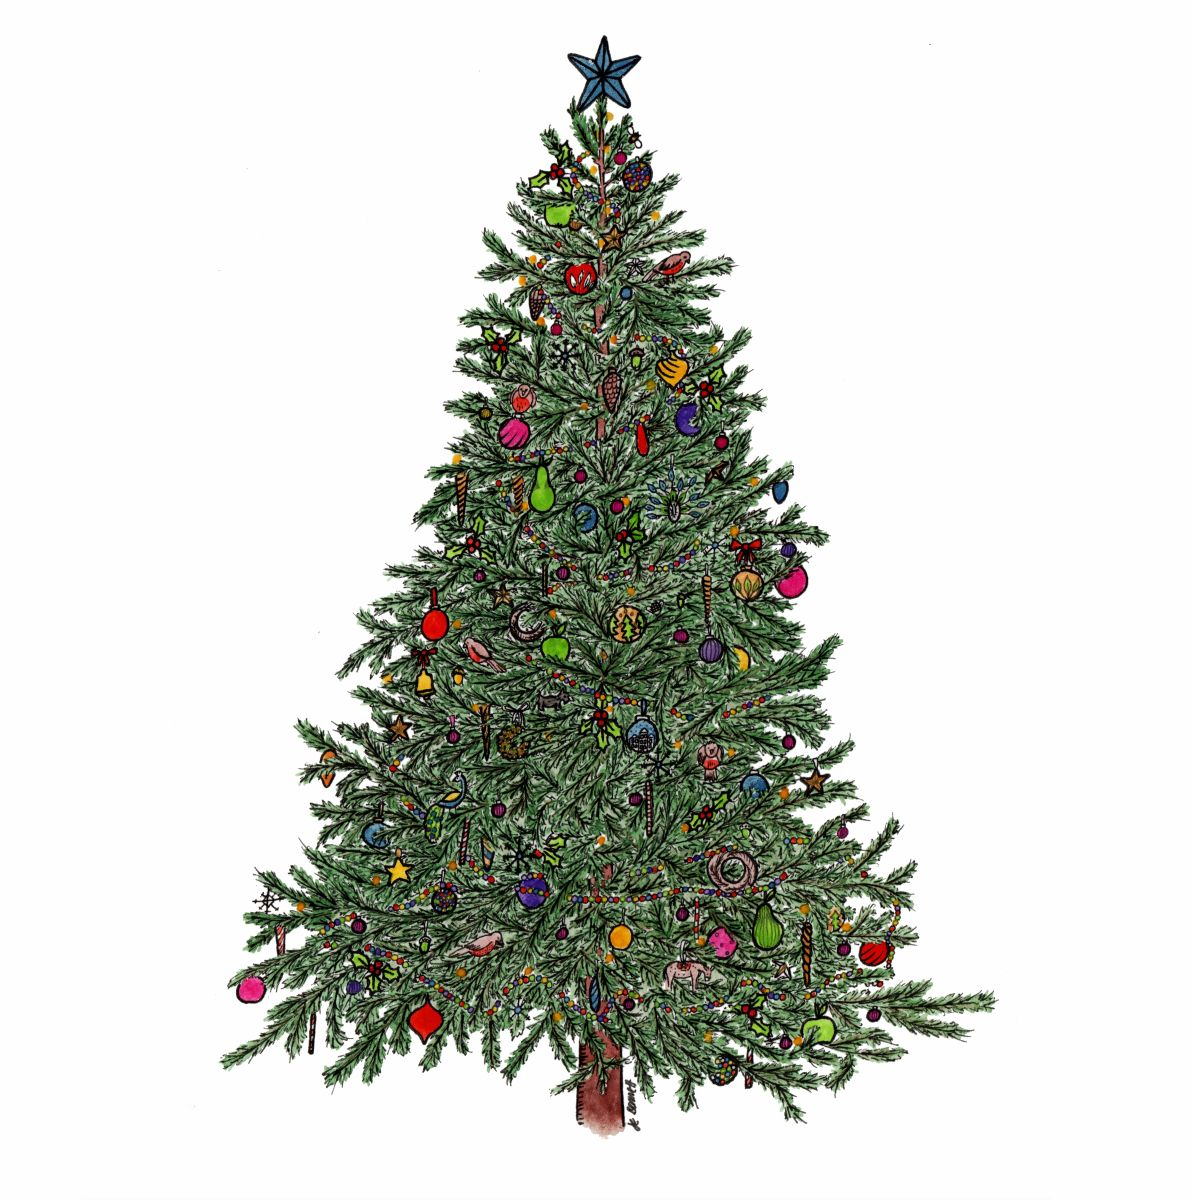 Watercolour Christmas Tree: Hand Painted, Watercolour Christmas Tree Illustration